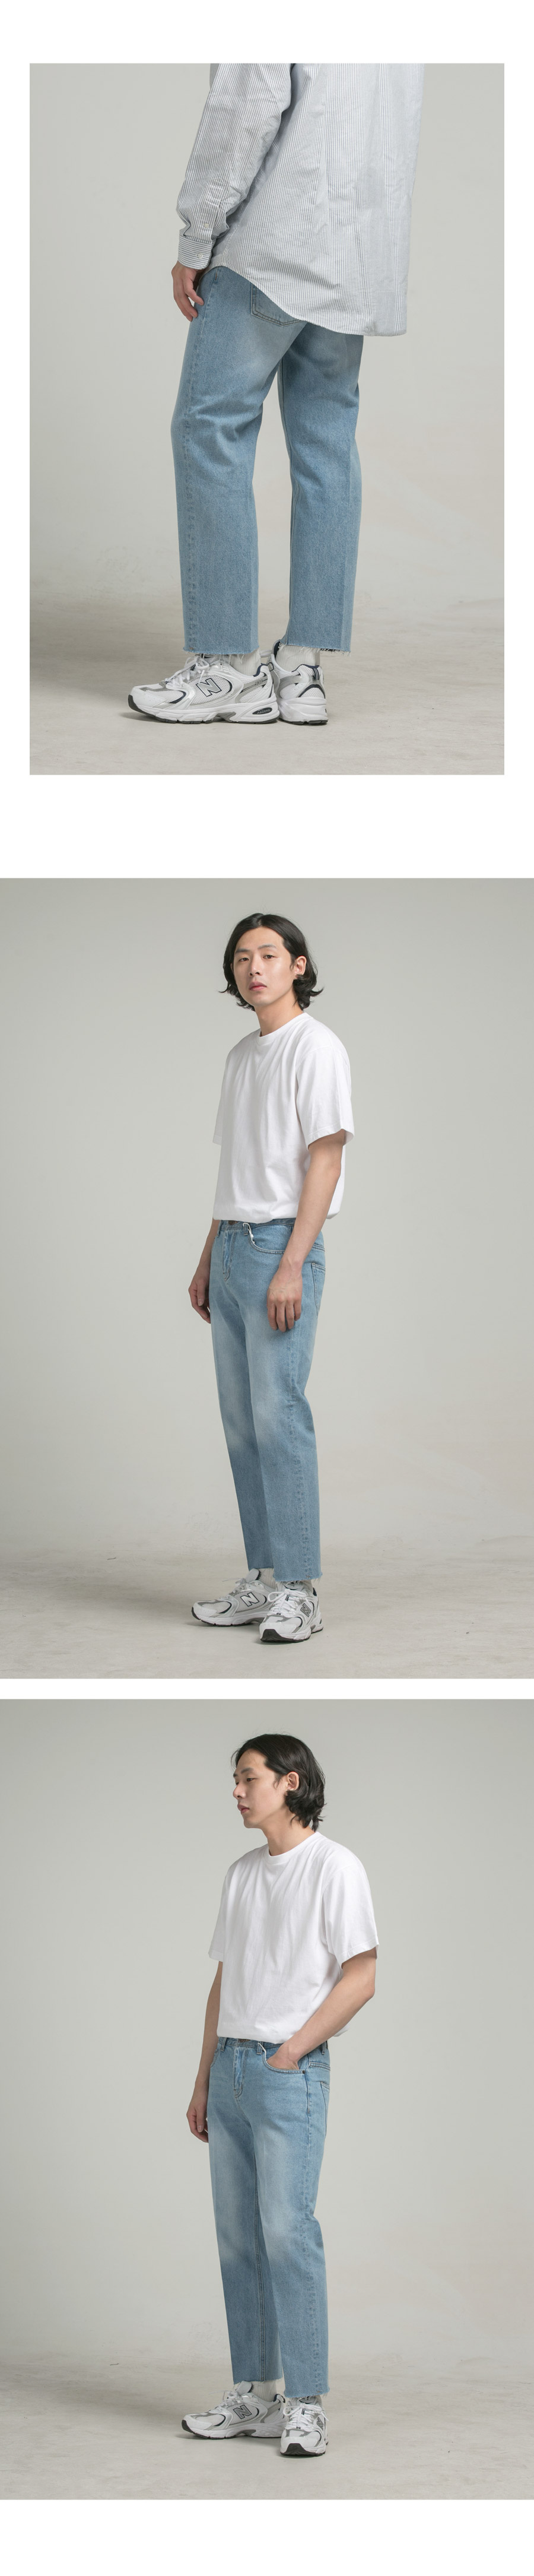 싱커루프(SINKERLOOP) M-Grin #0831  (OK STRAIGHT  CROP JEANS)